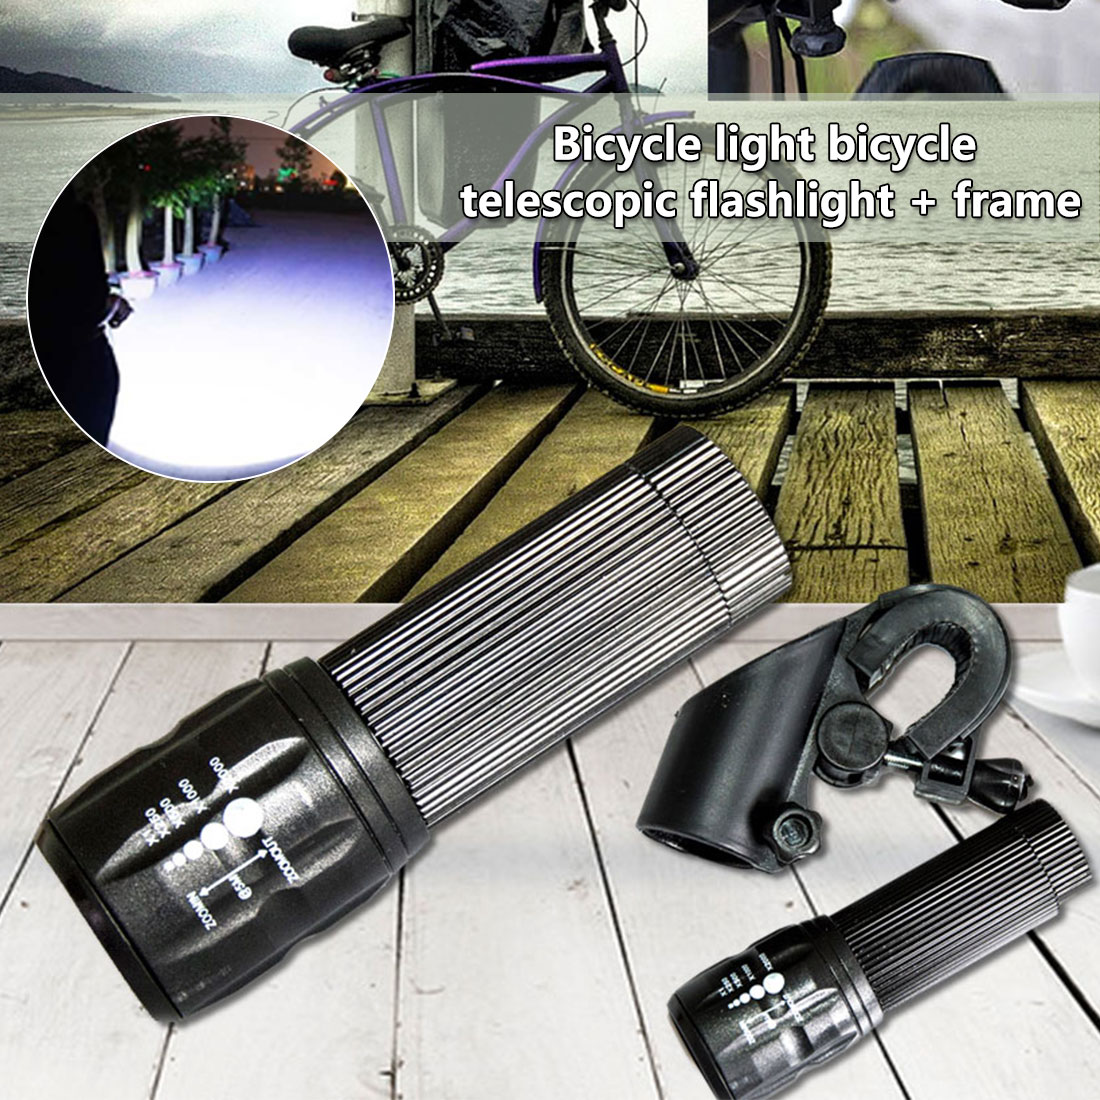 3 Modes Bike Light 450Lumens Q5 Front Bike Led Light Waterproof Zoomable Cycling Torch LED Flashlight   3 Modes Bike Light 450Lumens Q5 Front Bike Led Light Waterproof Zoomable Cycling Torch LED Flashlight